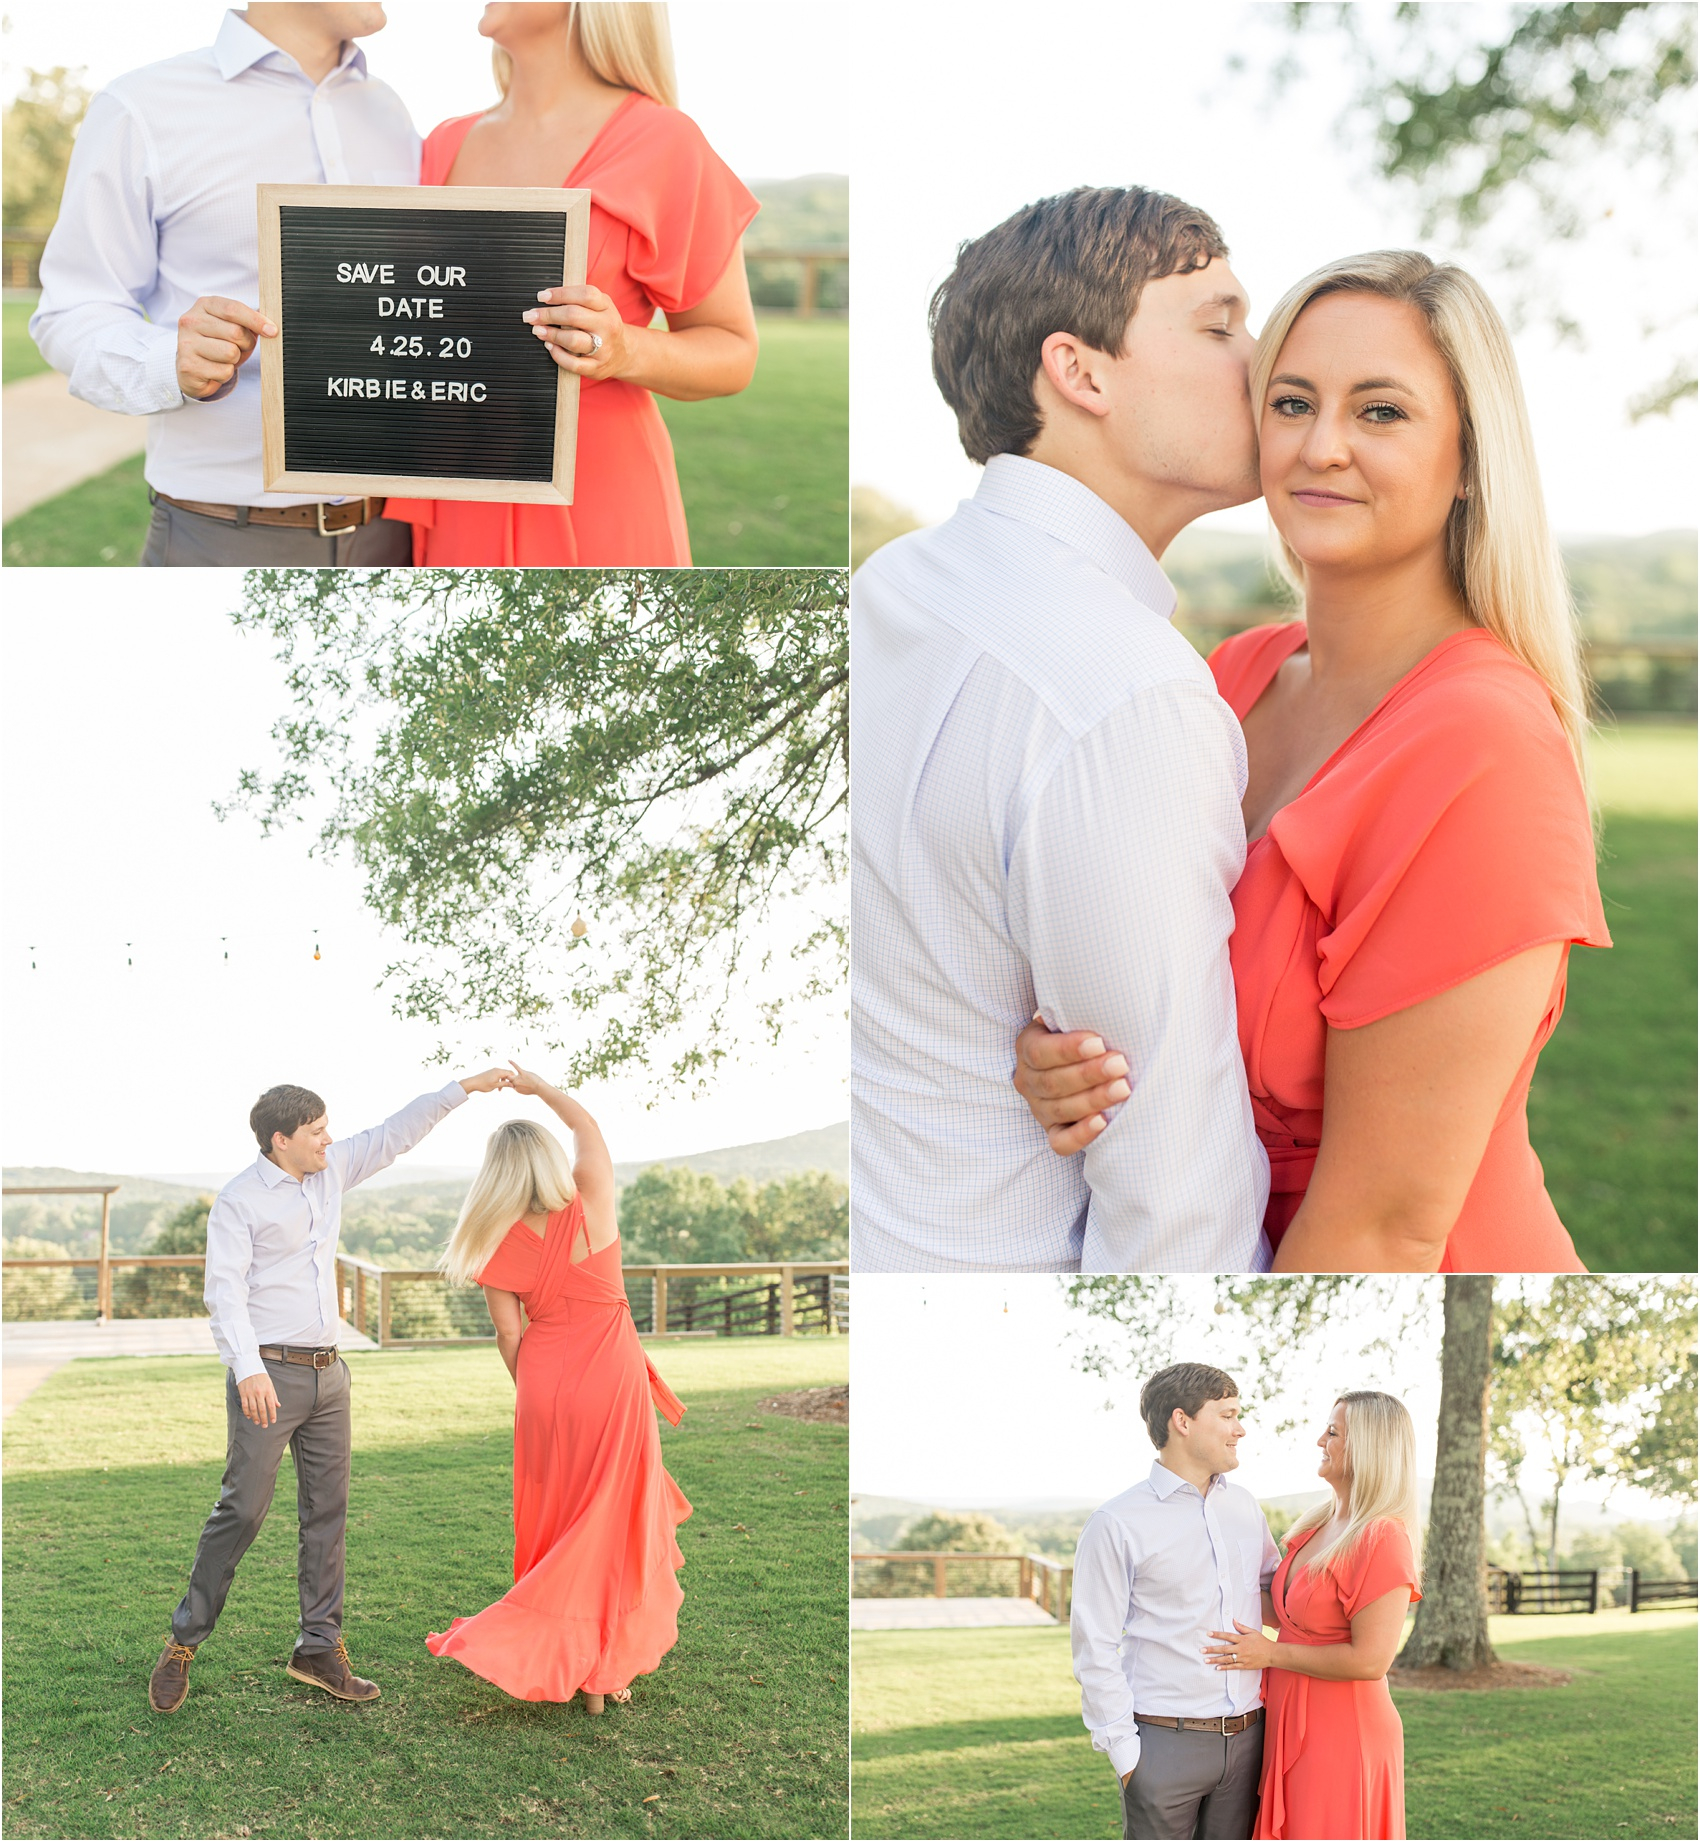 Savannah Eve Photography LLC- Settlemyer-Heyward Engagements- Blog-15.jpg